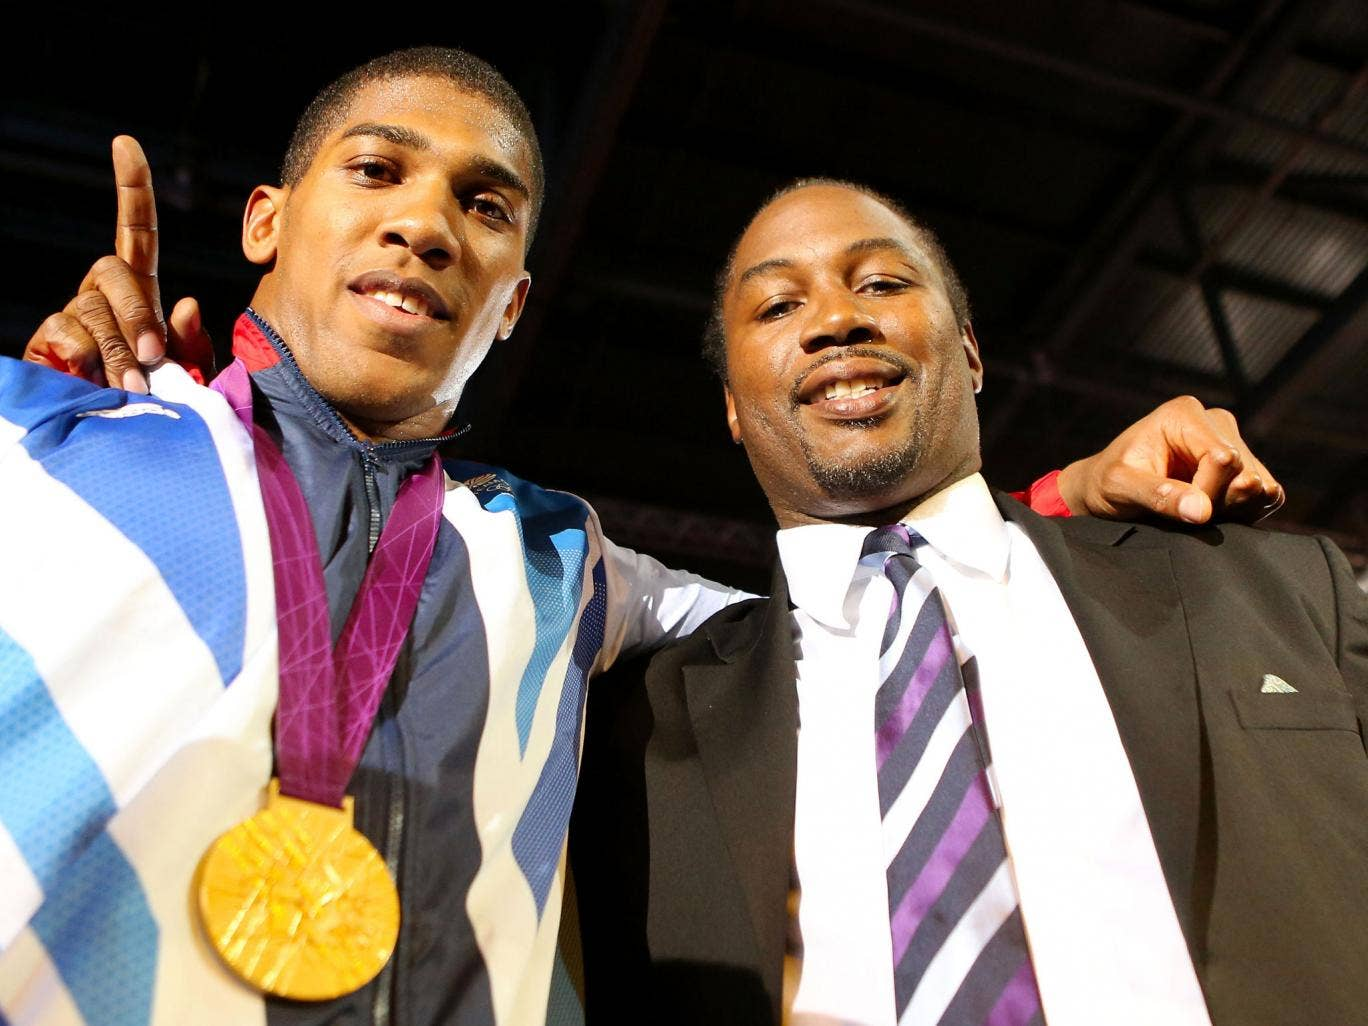 Anthony Joshua (left) with Lennox Lewis at the Olympics